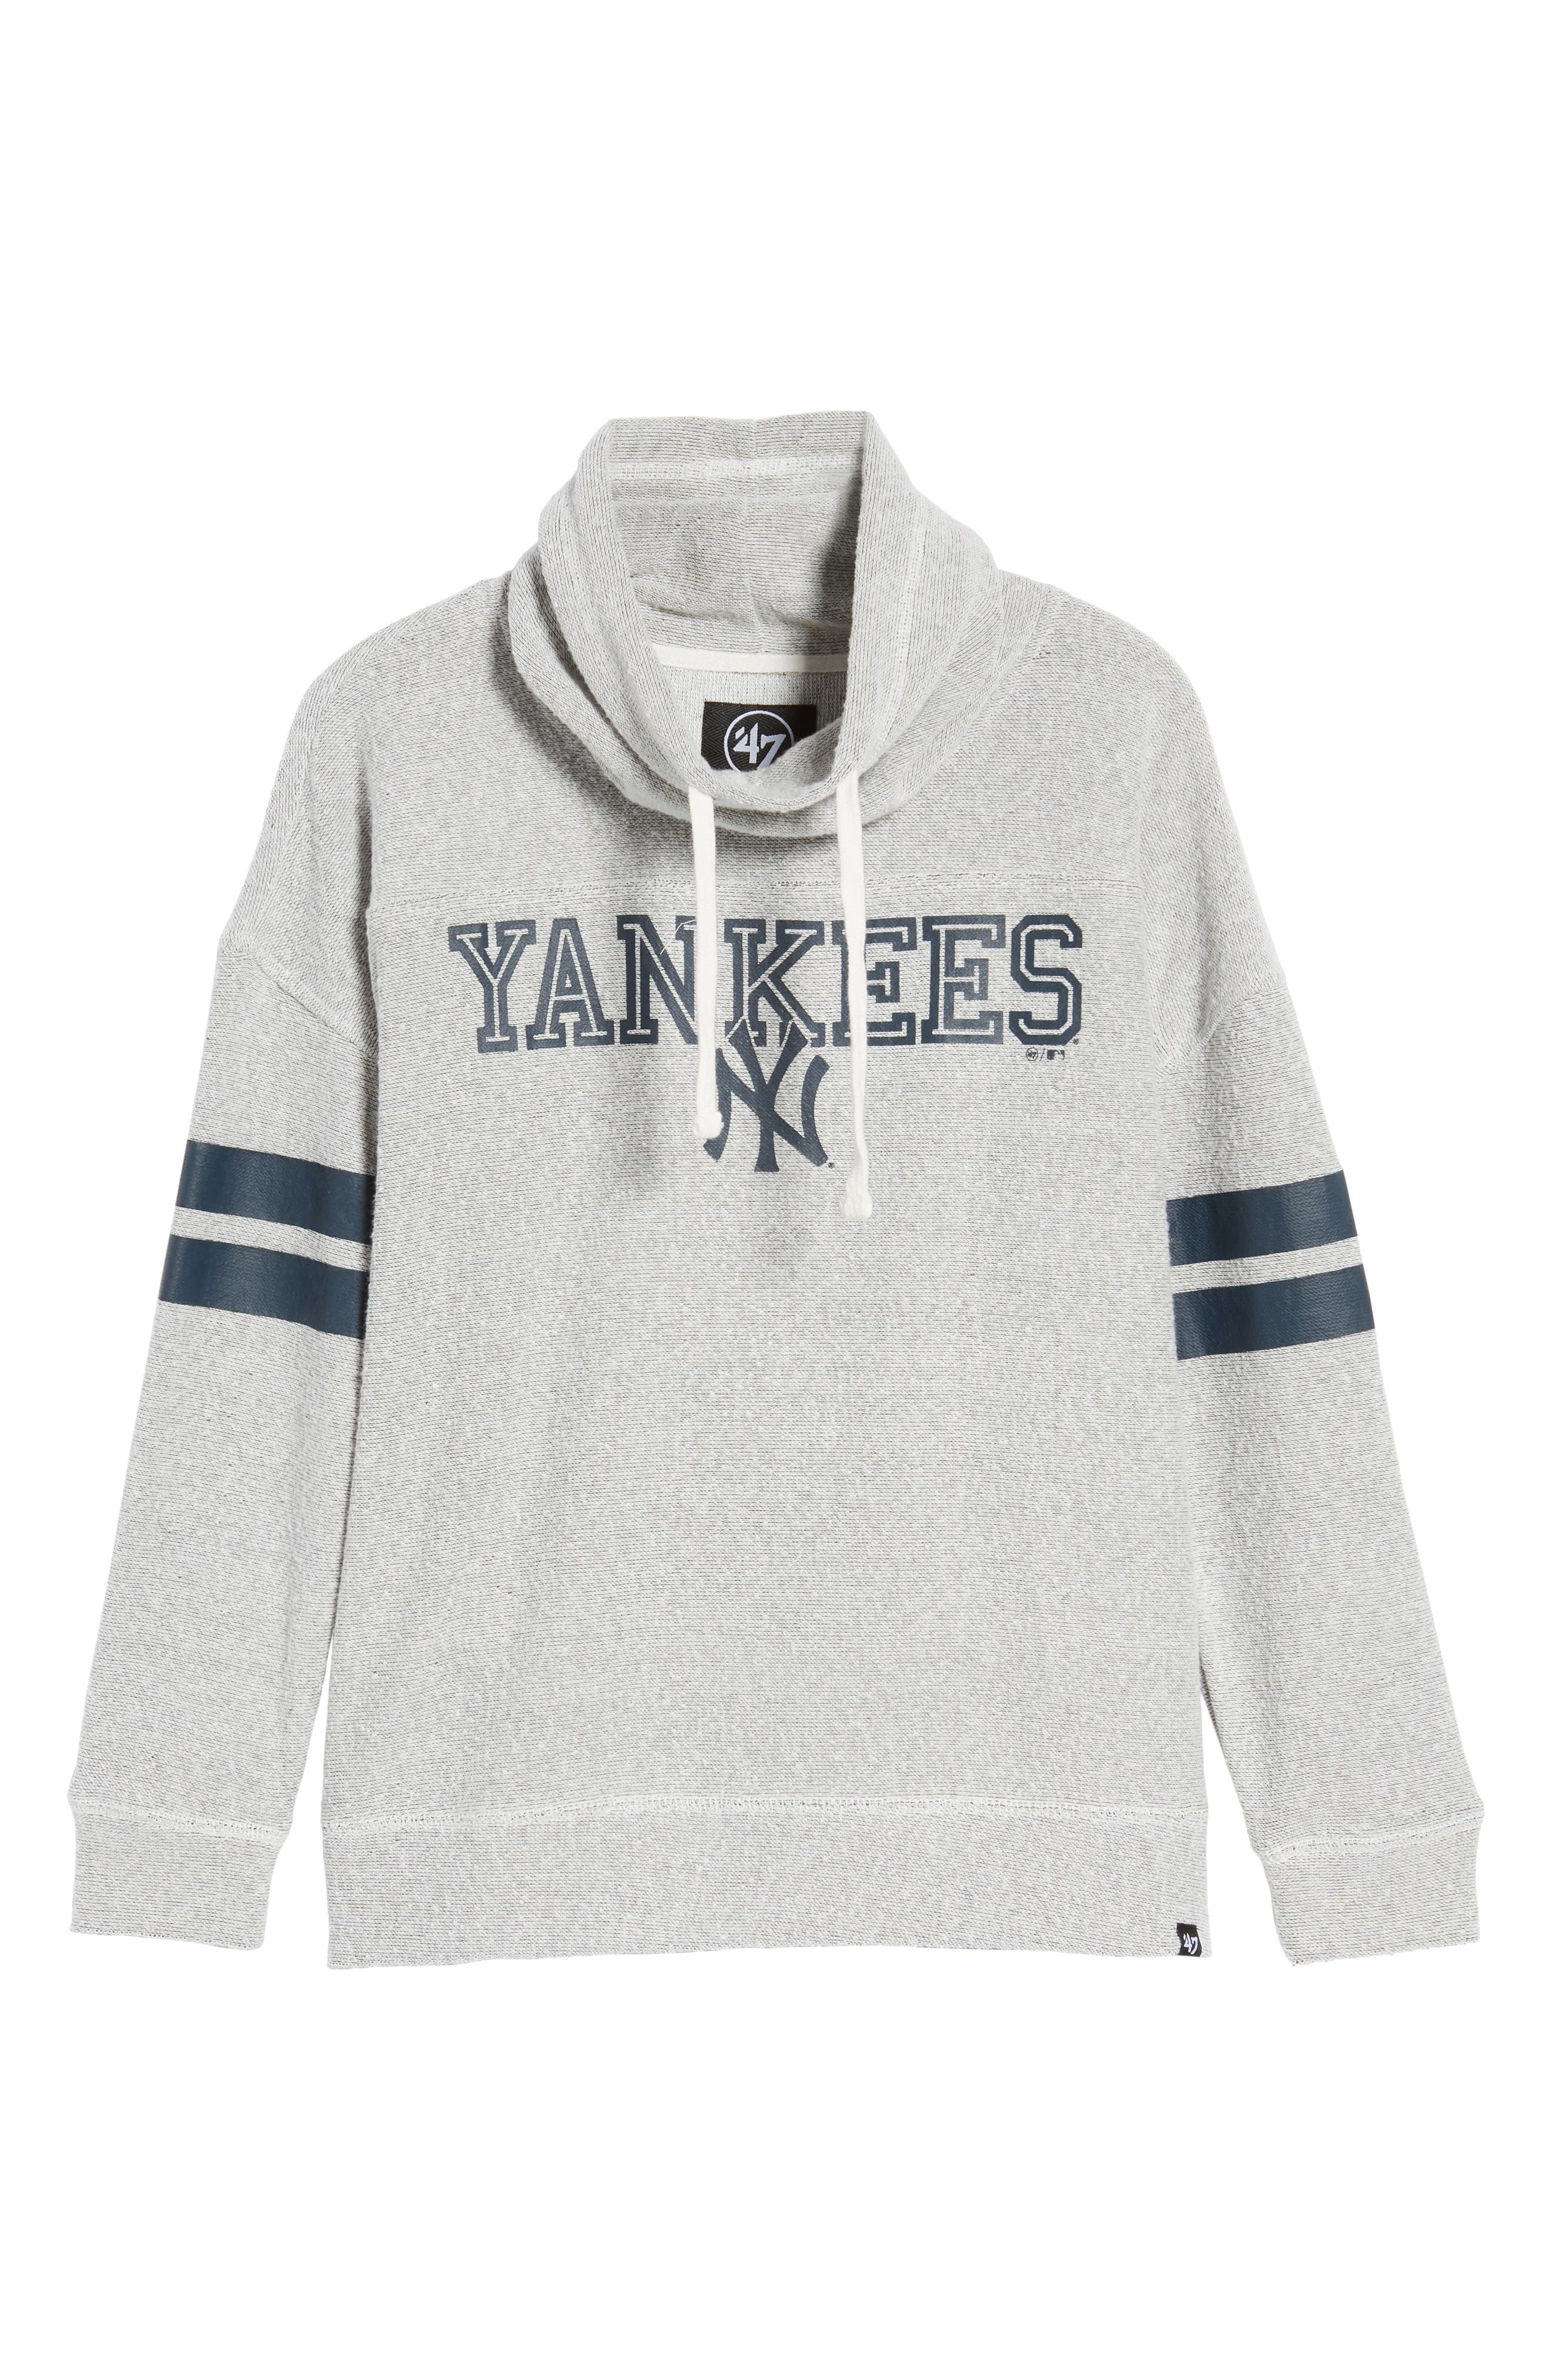 Encore Offsides New York Yankees Funnel Neck Sweatshirt,                             Alternate thumbnail 7, color,                             023